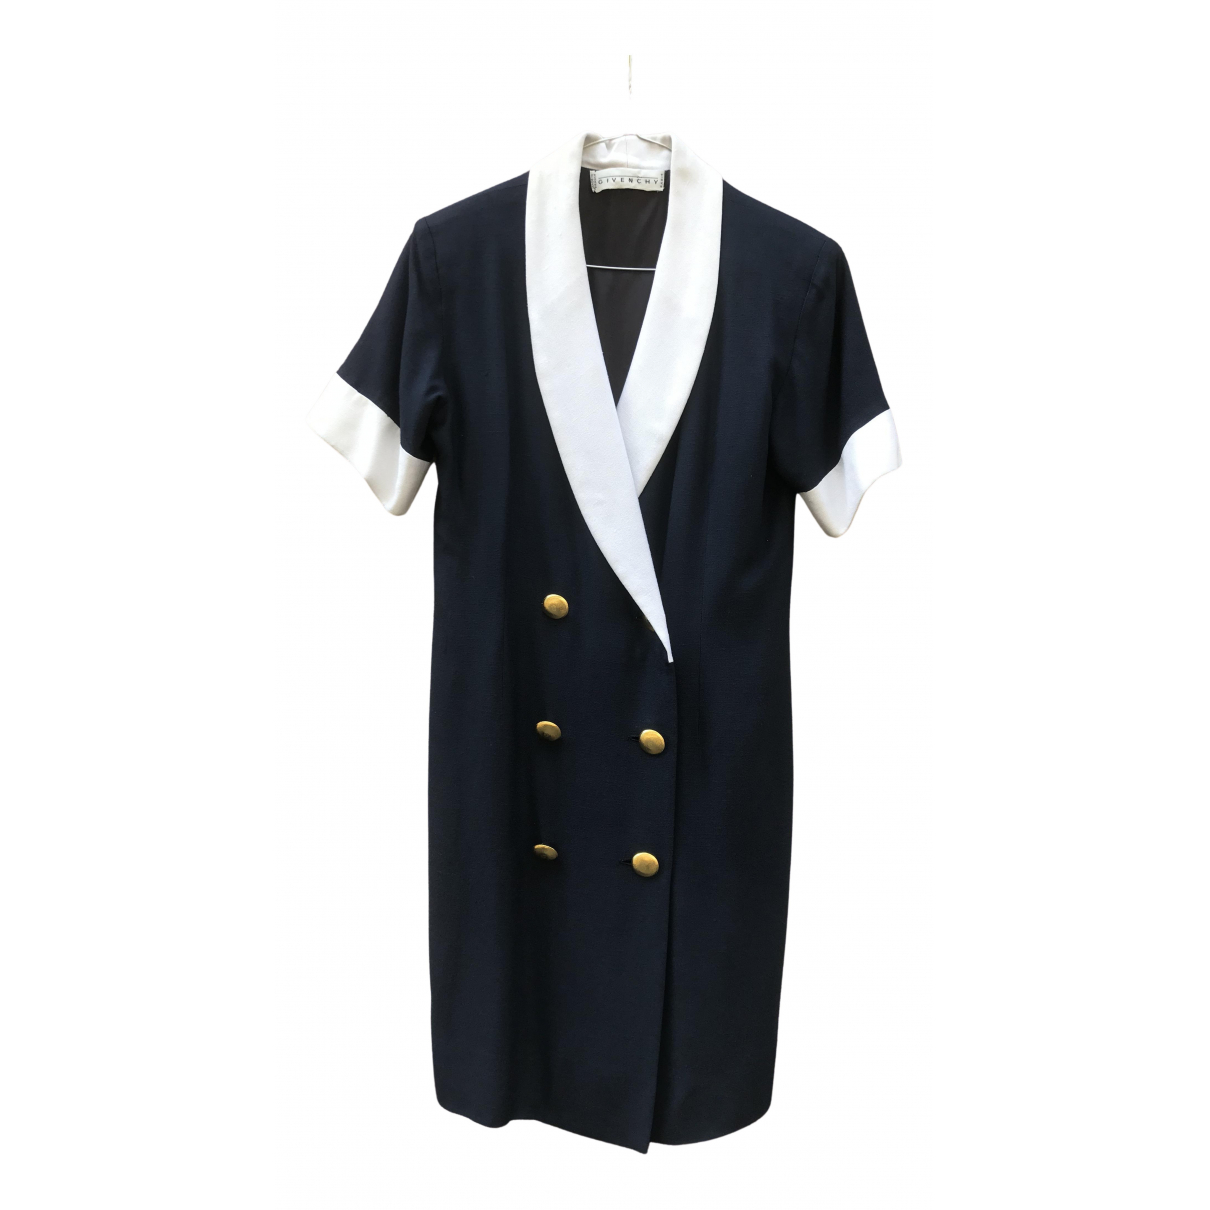 Givenchy \N Navy Cotton dress for Women 36 FR